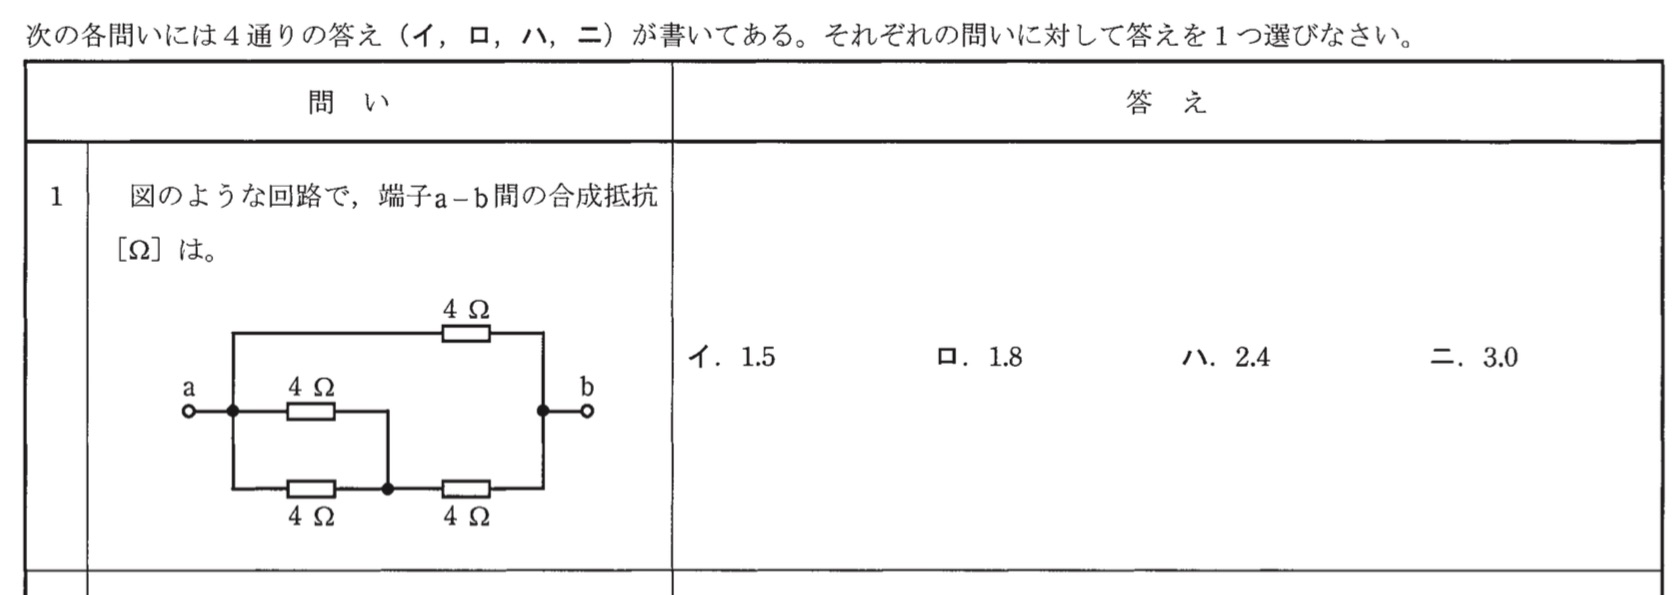 www_shiken_or_jp_answer_pdf_181_file_nm01_KA1_PDF.jpg